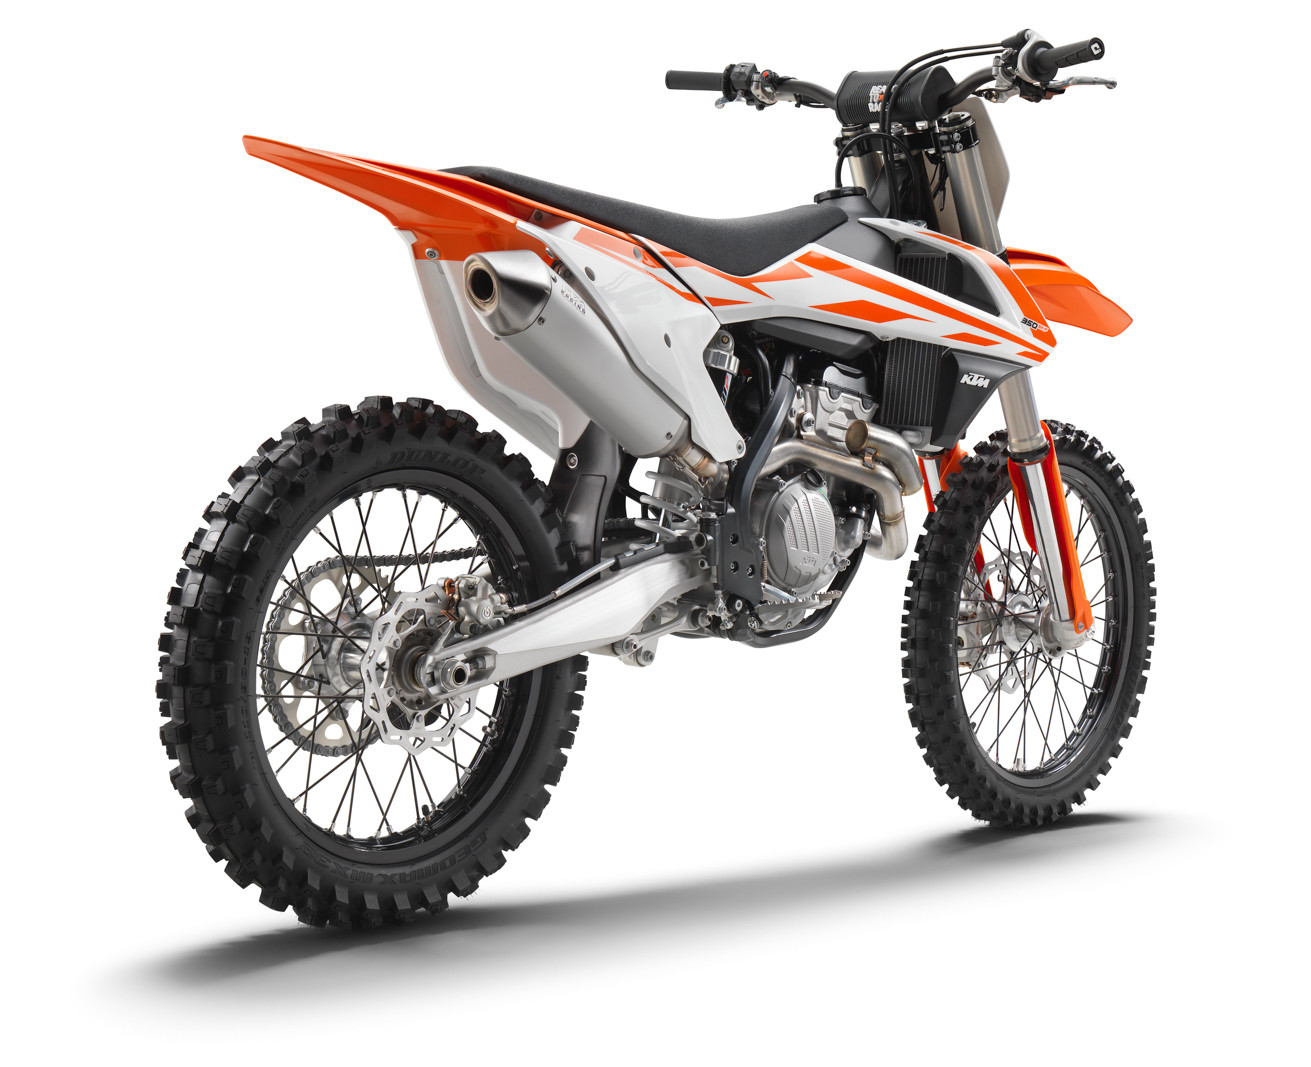 2017 ktm 350 xc-f - first look: 2017 ktm motocross and cross